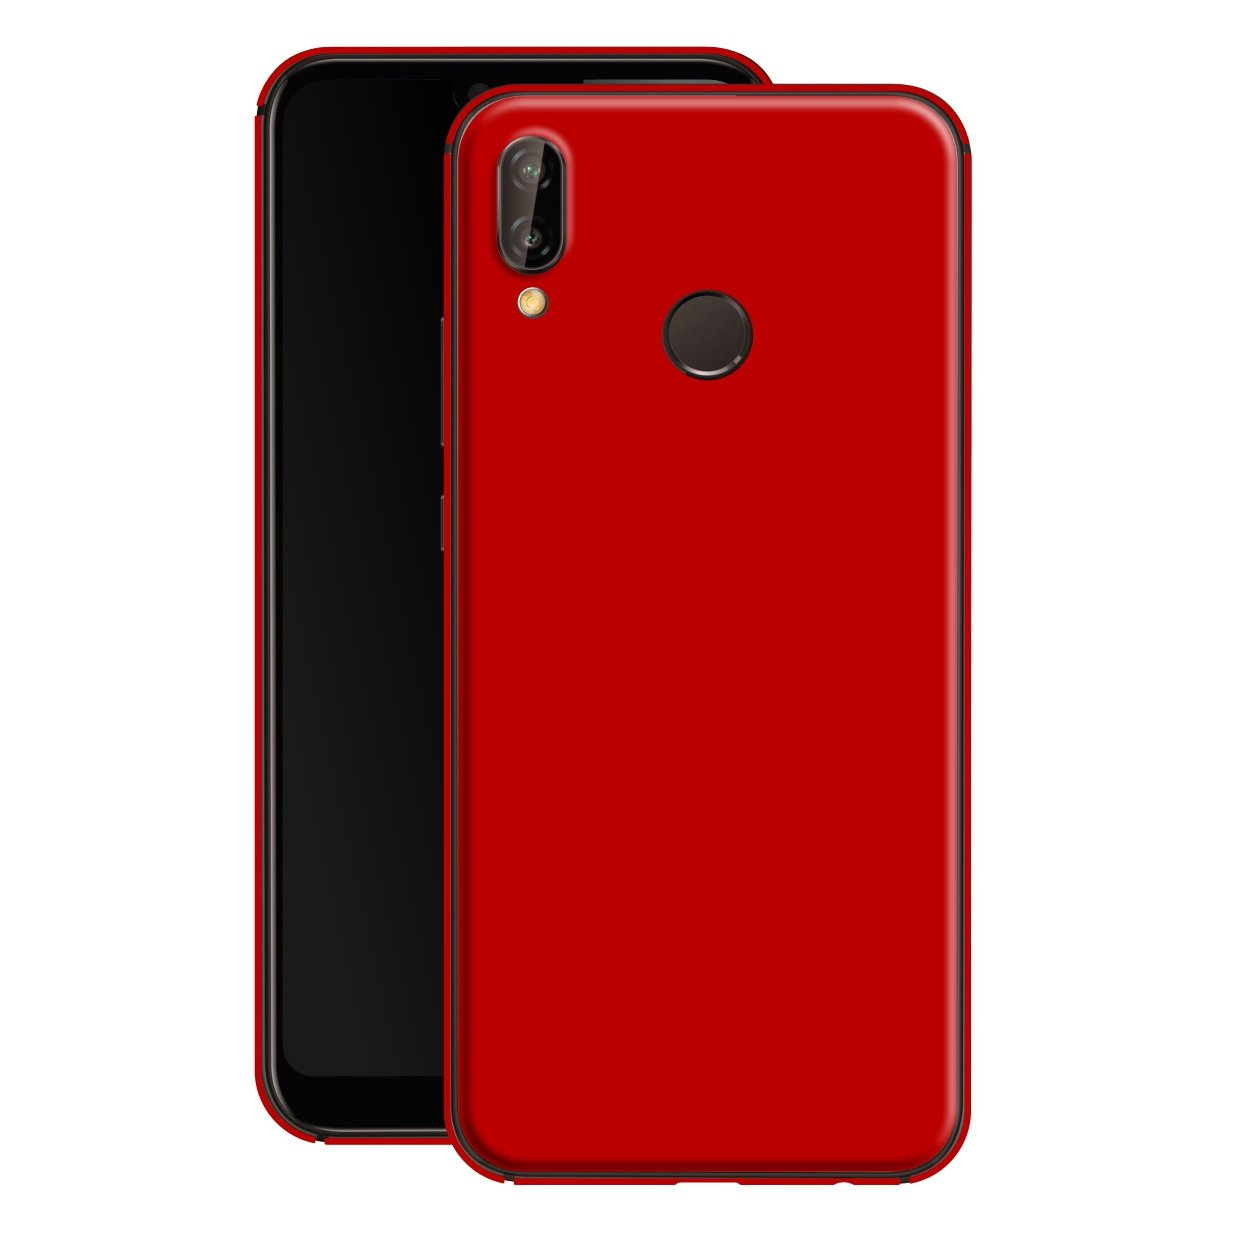 Huawei P20 LITE Deep Red Glossy Gloss Finish Skin, Decal, Wrap, Protector, Cover by EasySkinz | EasySkinz.com